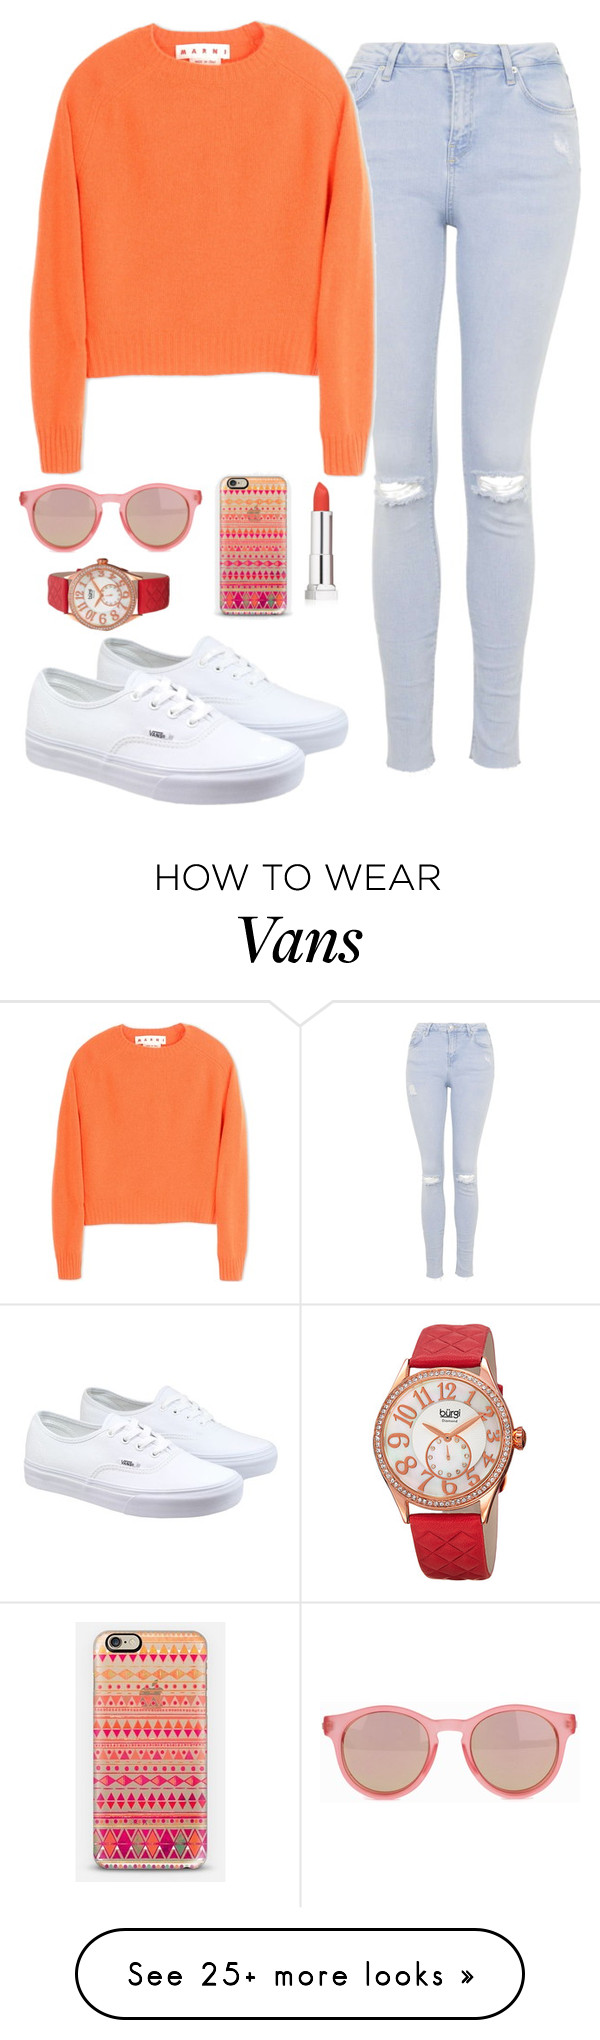 """""""Cute But Simple"""" by quonton on Polyvore featuring Topshop, Marni, Le Specs, Casetify, Maybelline, bürgi, Vans, women's clothing, women's fashion and women"""